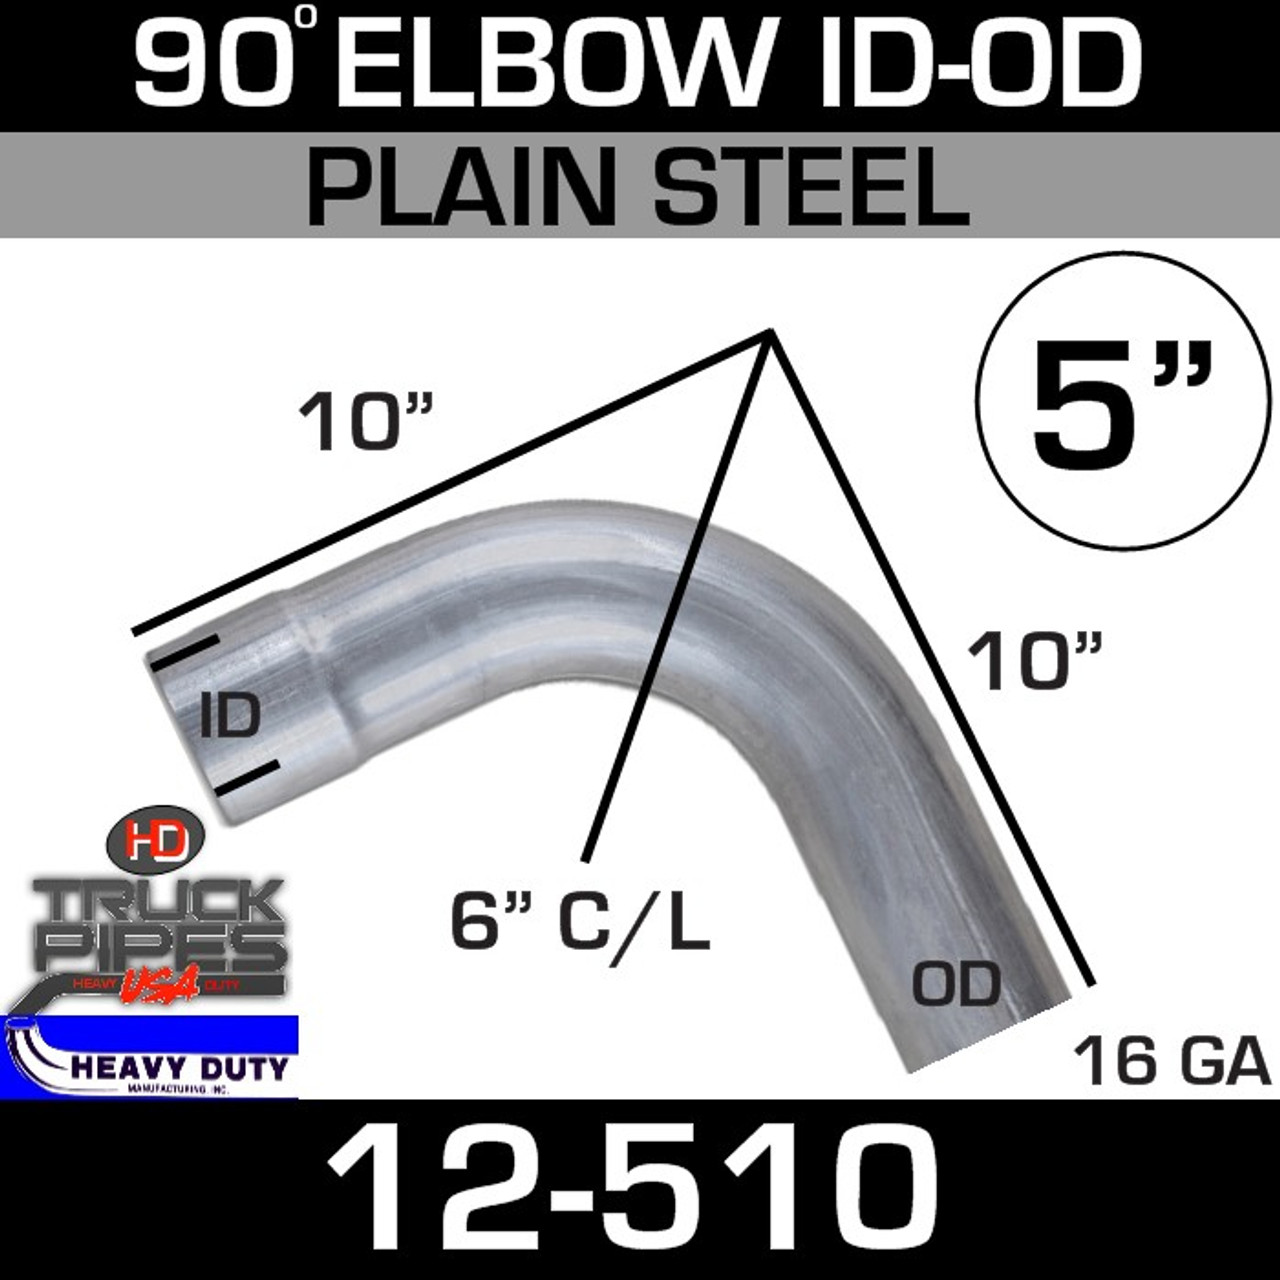 Heavy Duty Manufacturing 12-510A Aluminized Elbow 90 Degree , One End OD, One End ID